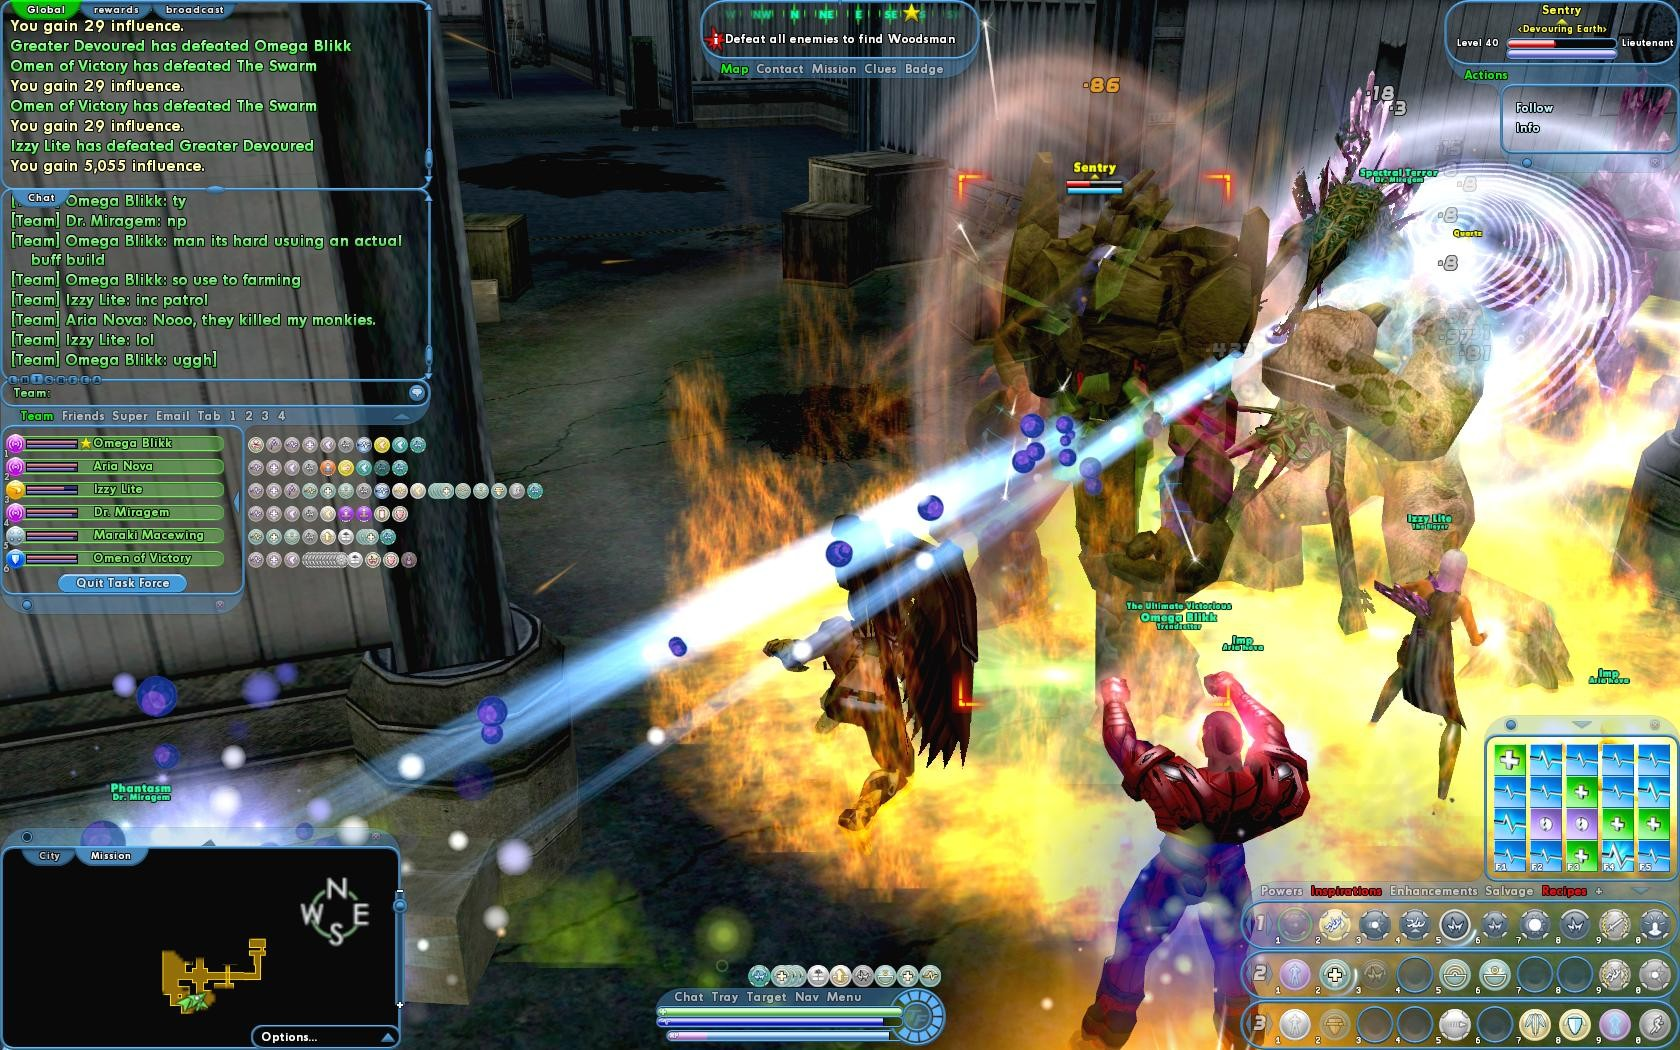 City of Heroes - Defeat All Enemies to Find Woodsman Two